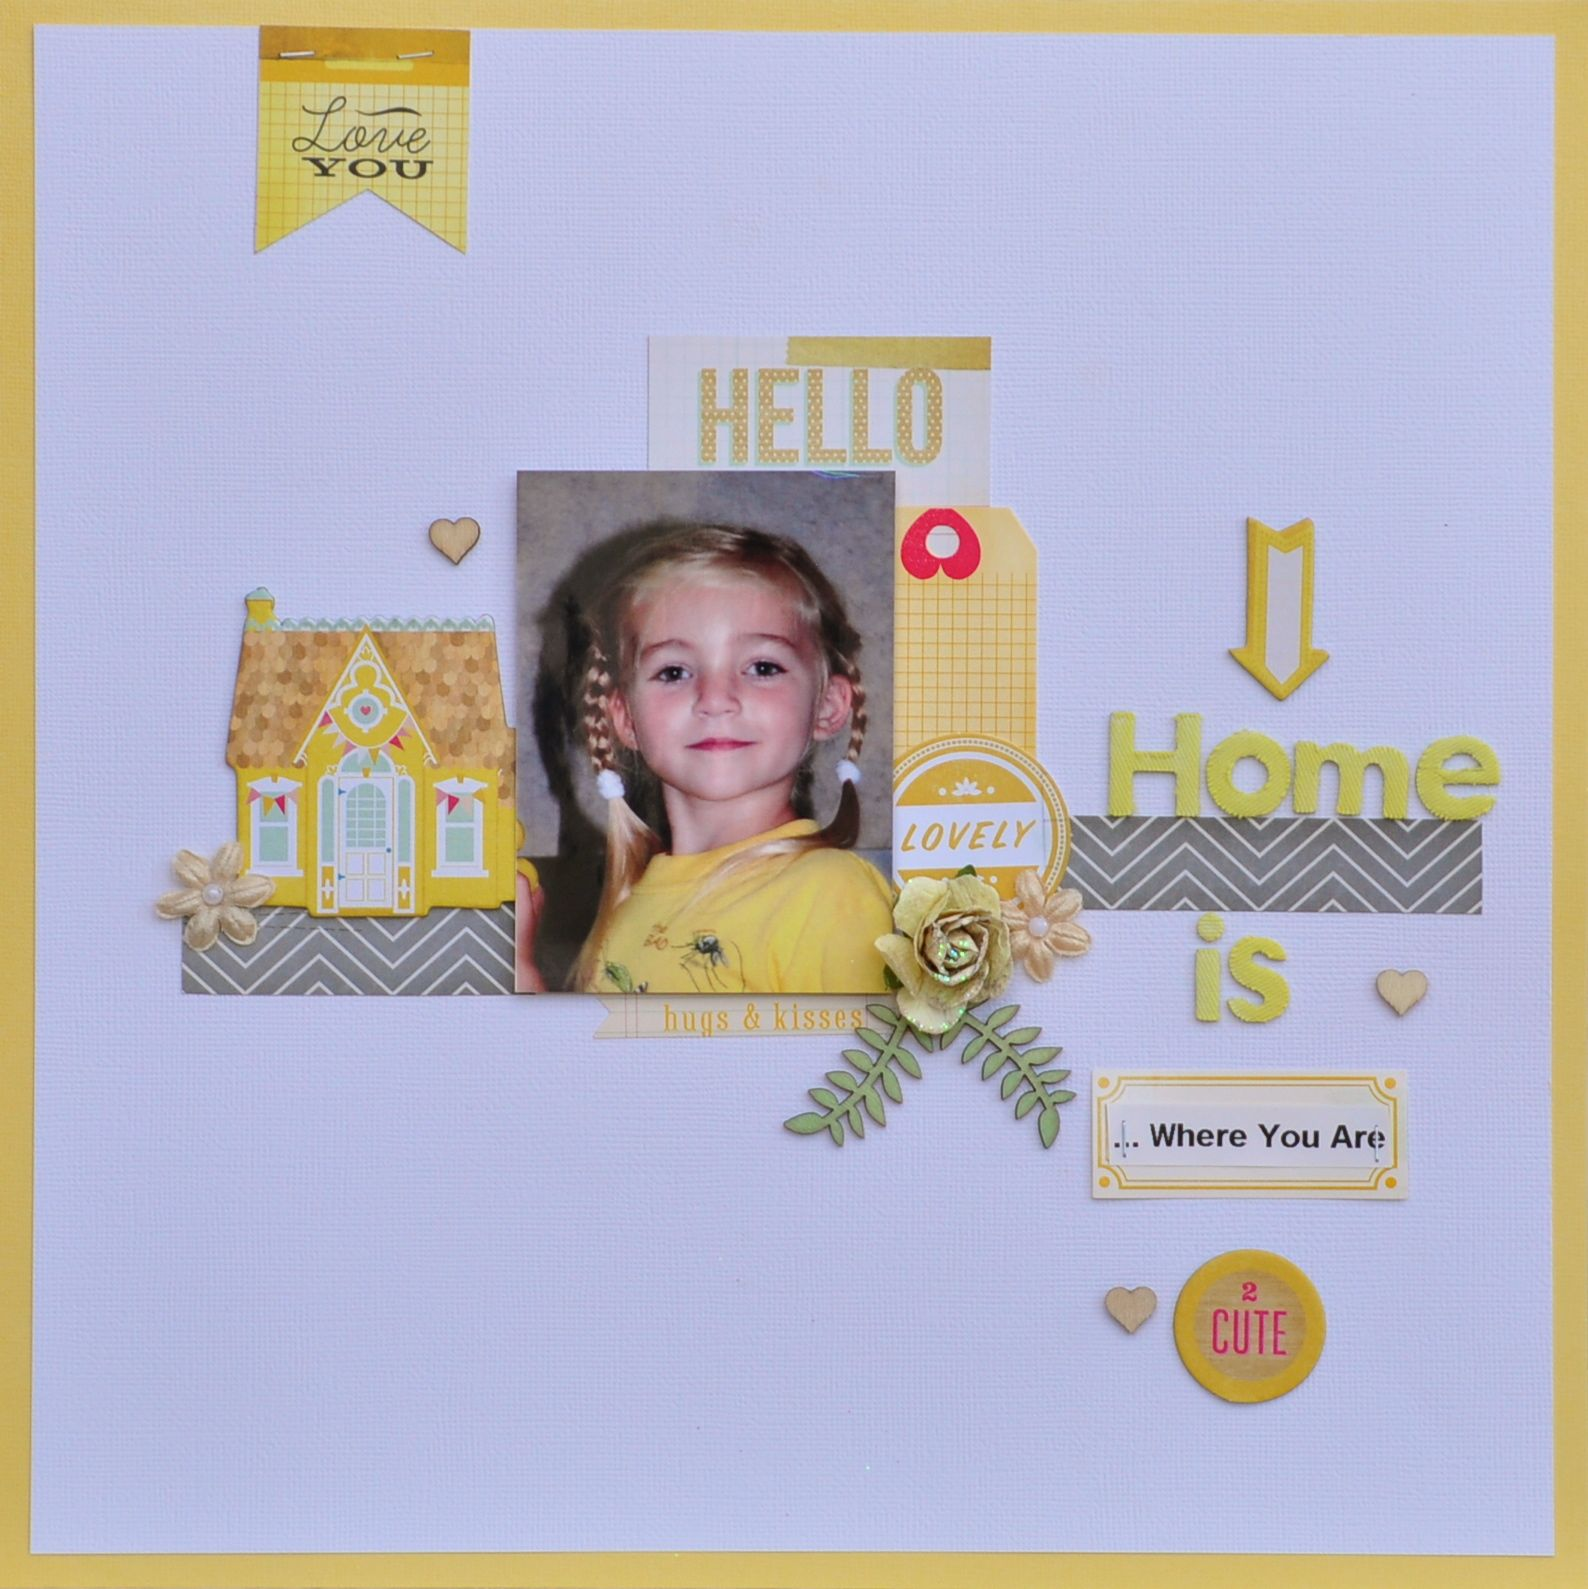 """Home is where you are - My Creative Scrapbook Limited Edition Kit Crate Paper """"Oh Darling"""" col stickers,Prima flowers and Studio Calico wood veneer leaves and hearts"""